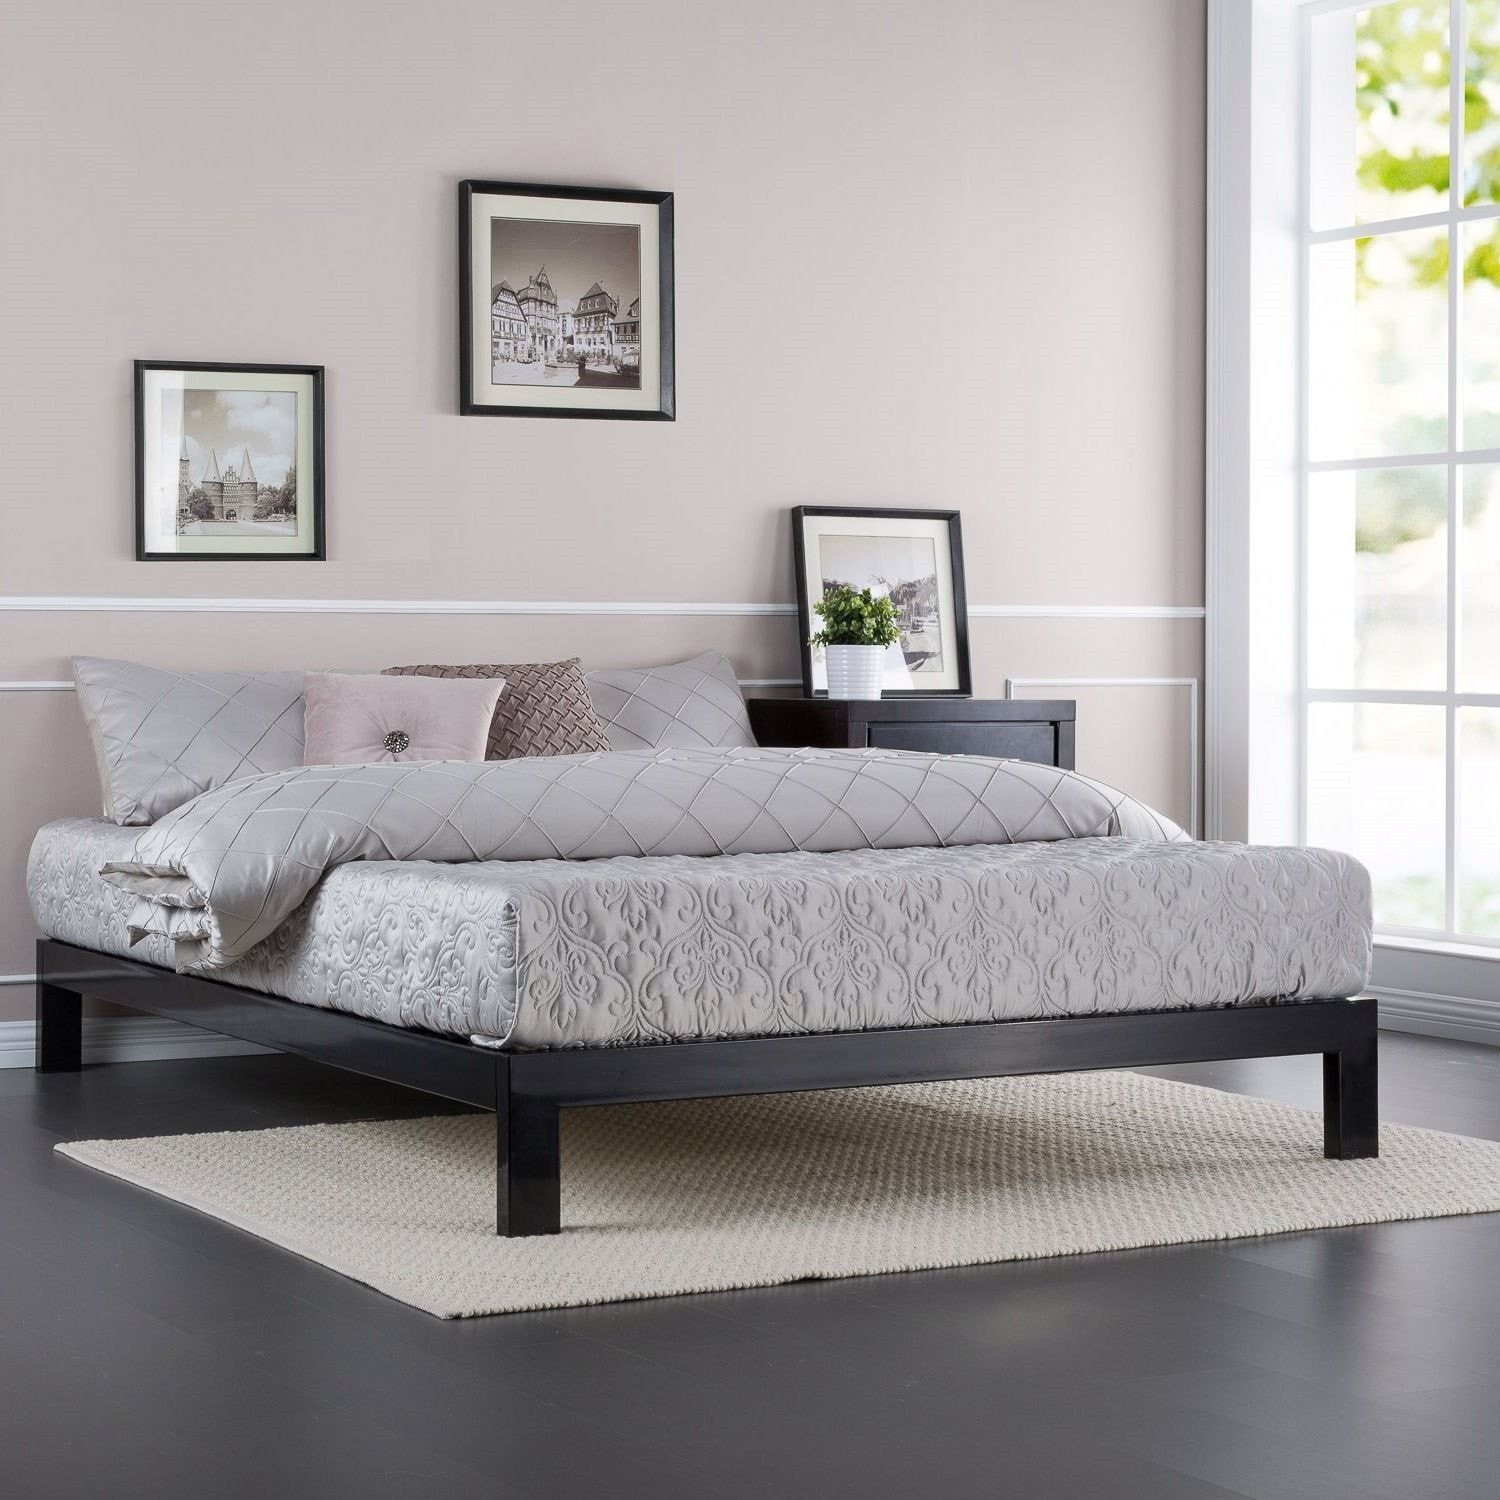 Full Size Contemporary Black Metal Platform Bed With Wooden Mattress